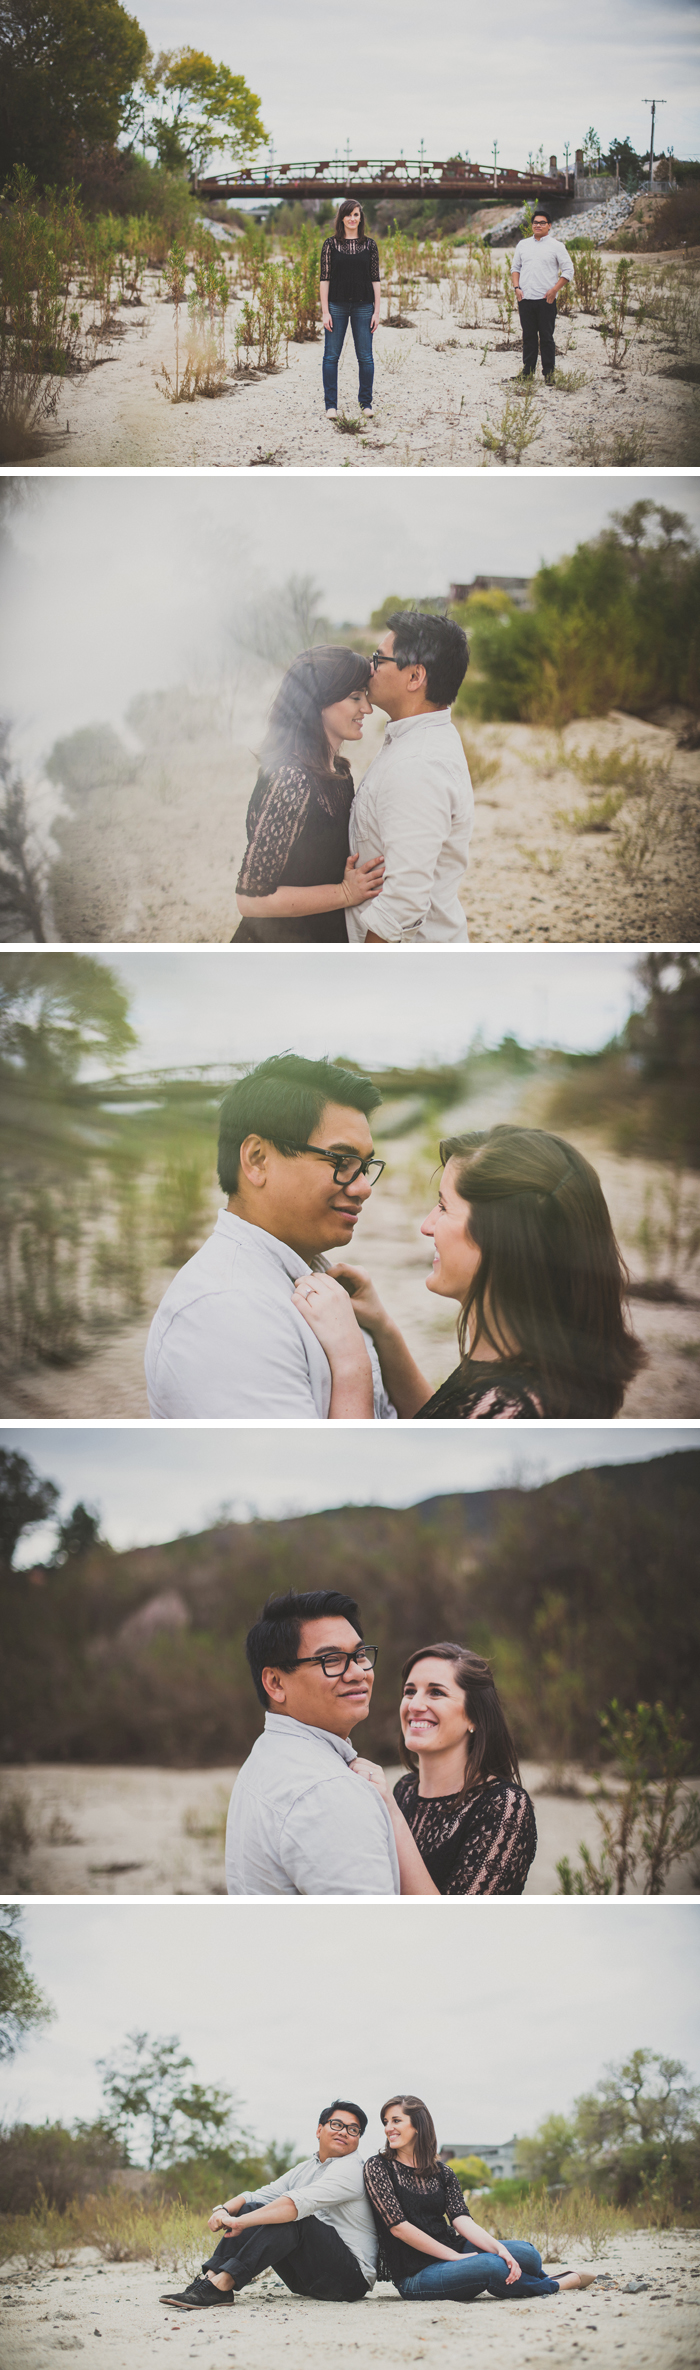 Engagement Photos In Old Town Temecula, California